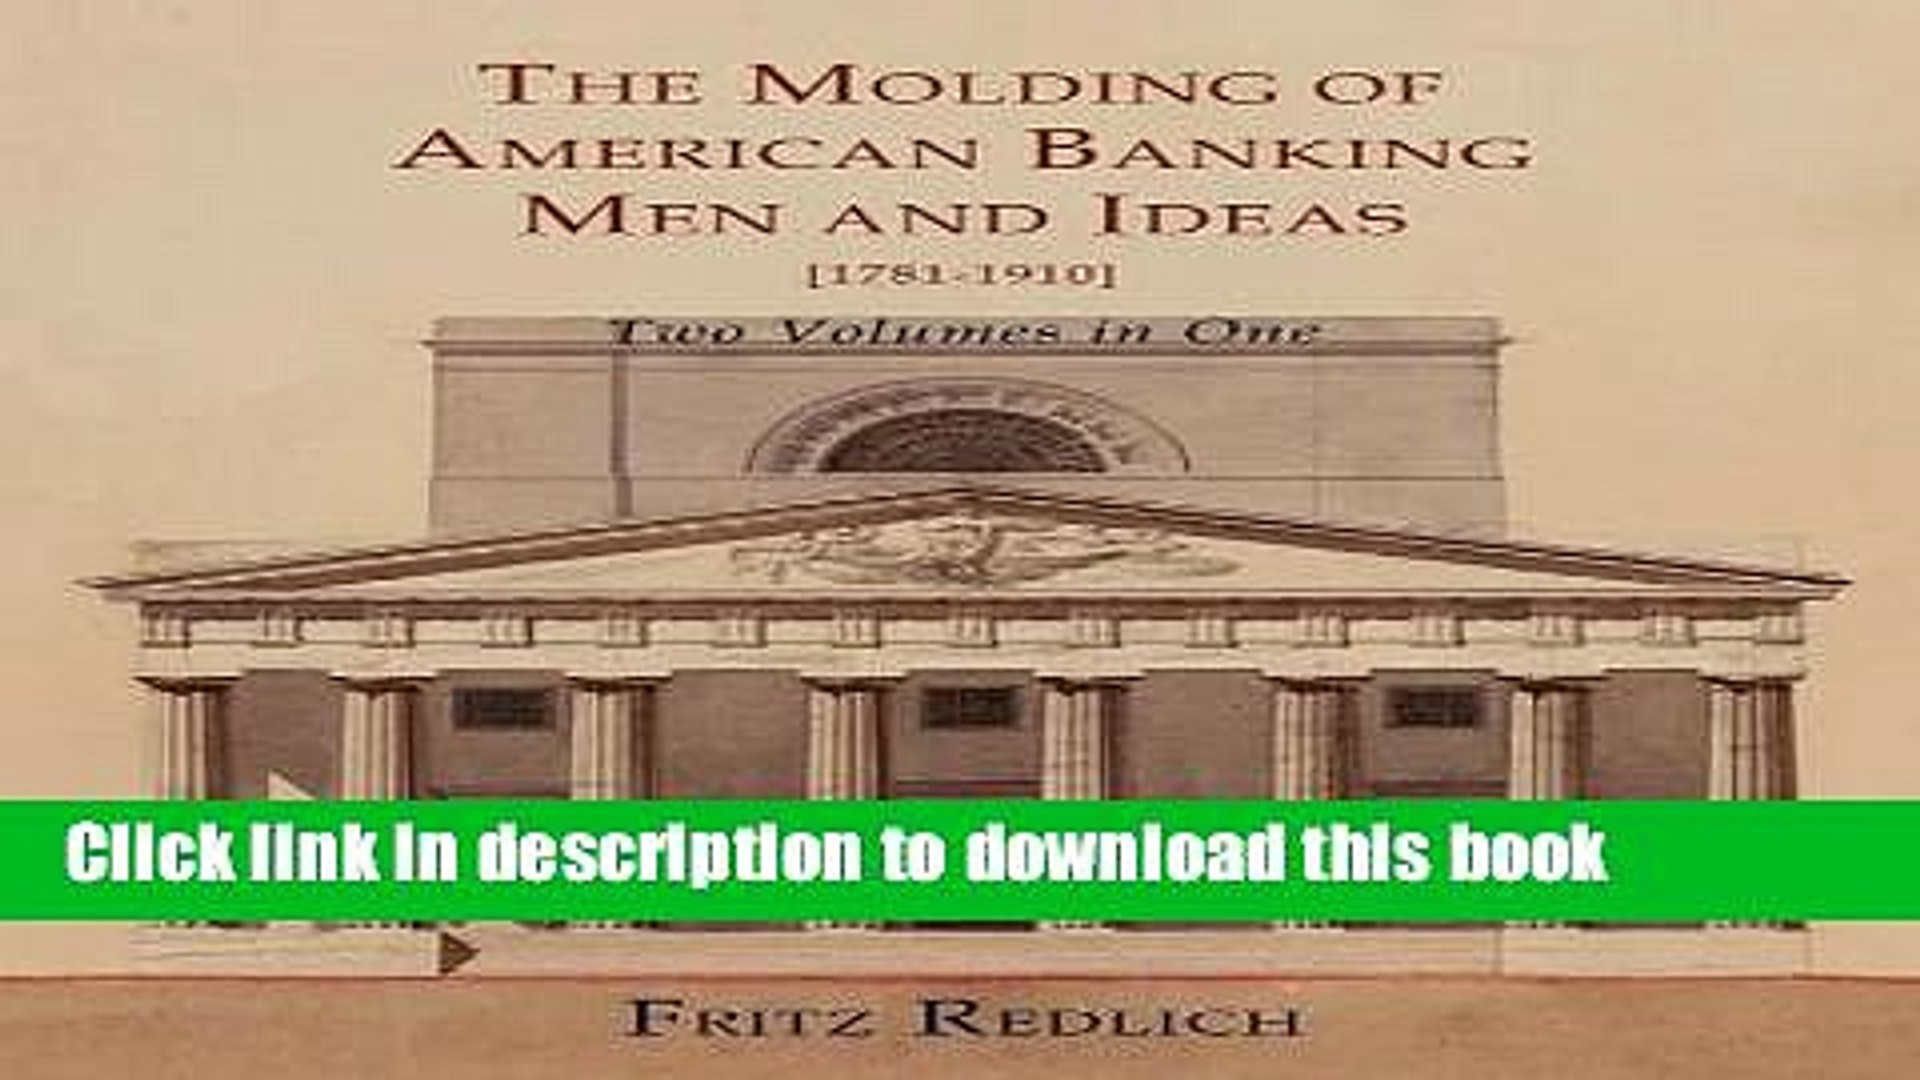 Ebook The Molding of American Banking: Men and Ideas [1781-1910]. Two Volumes Full Online